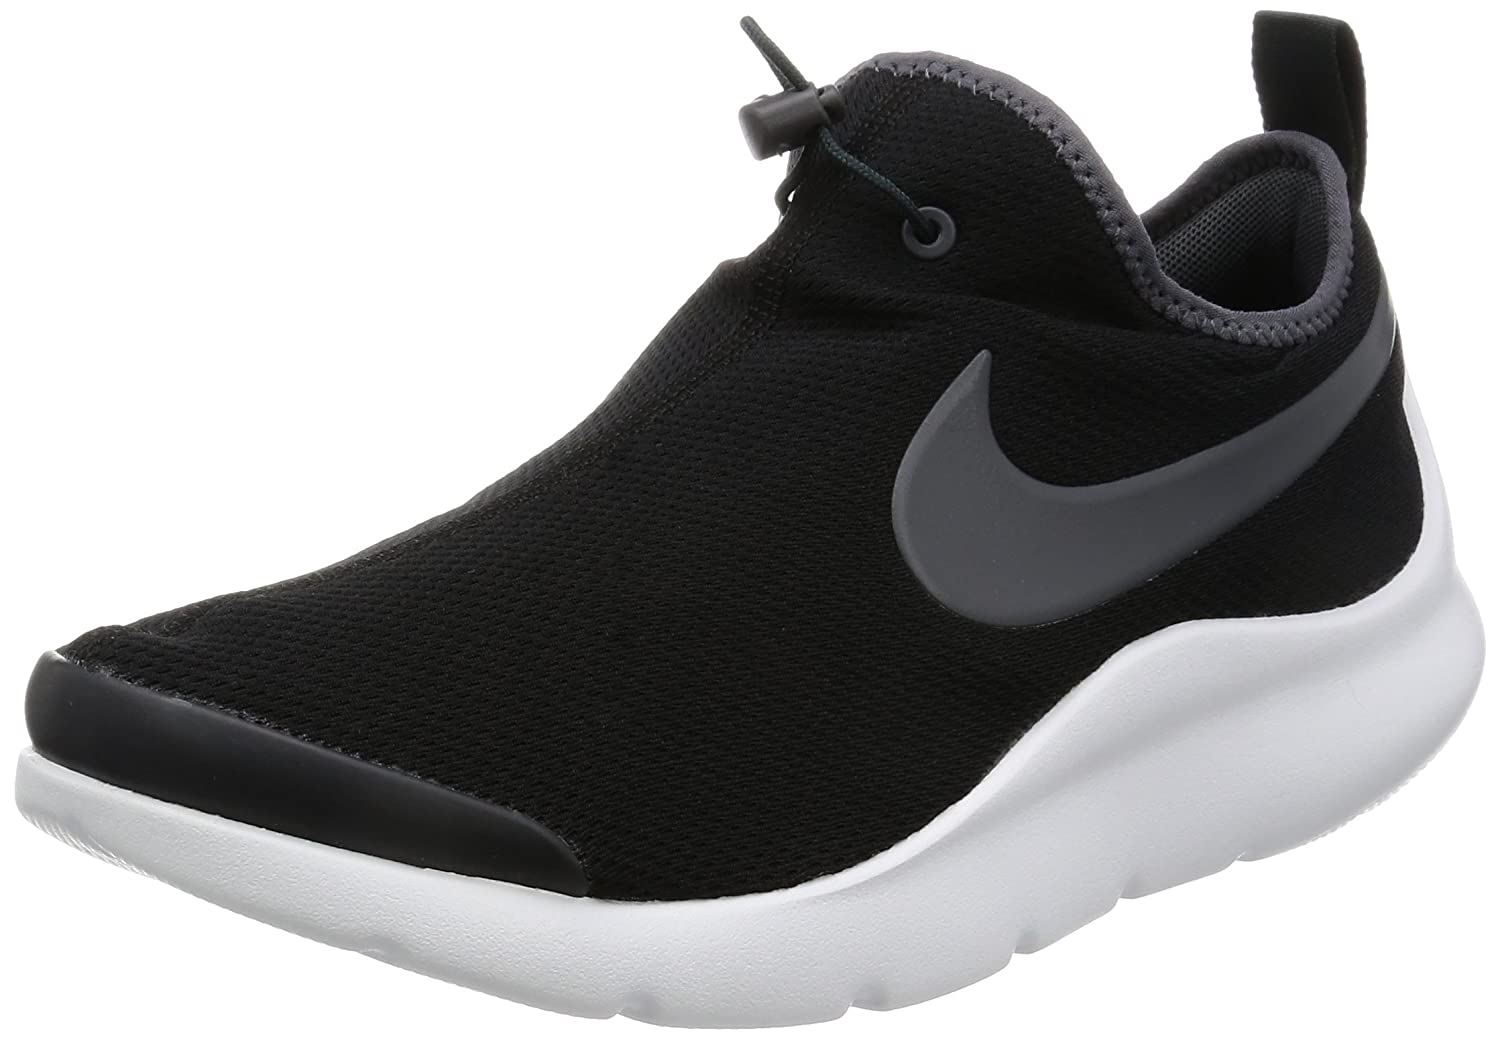 NIKE Men's Aptare SE Running Shoe B01N0NTV30 10 D(M) US|Black / Anthracite - White